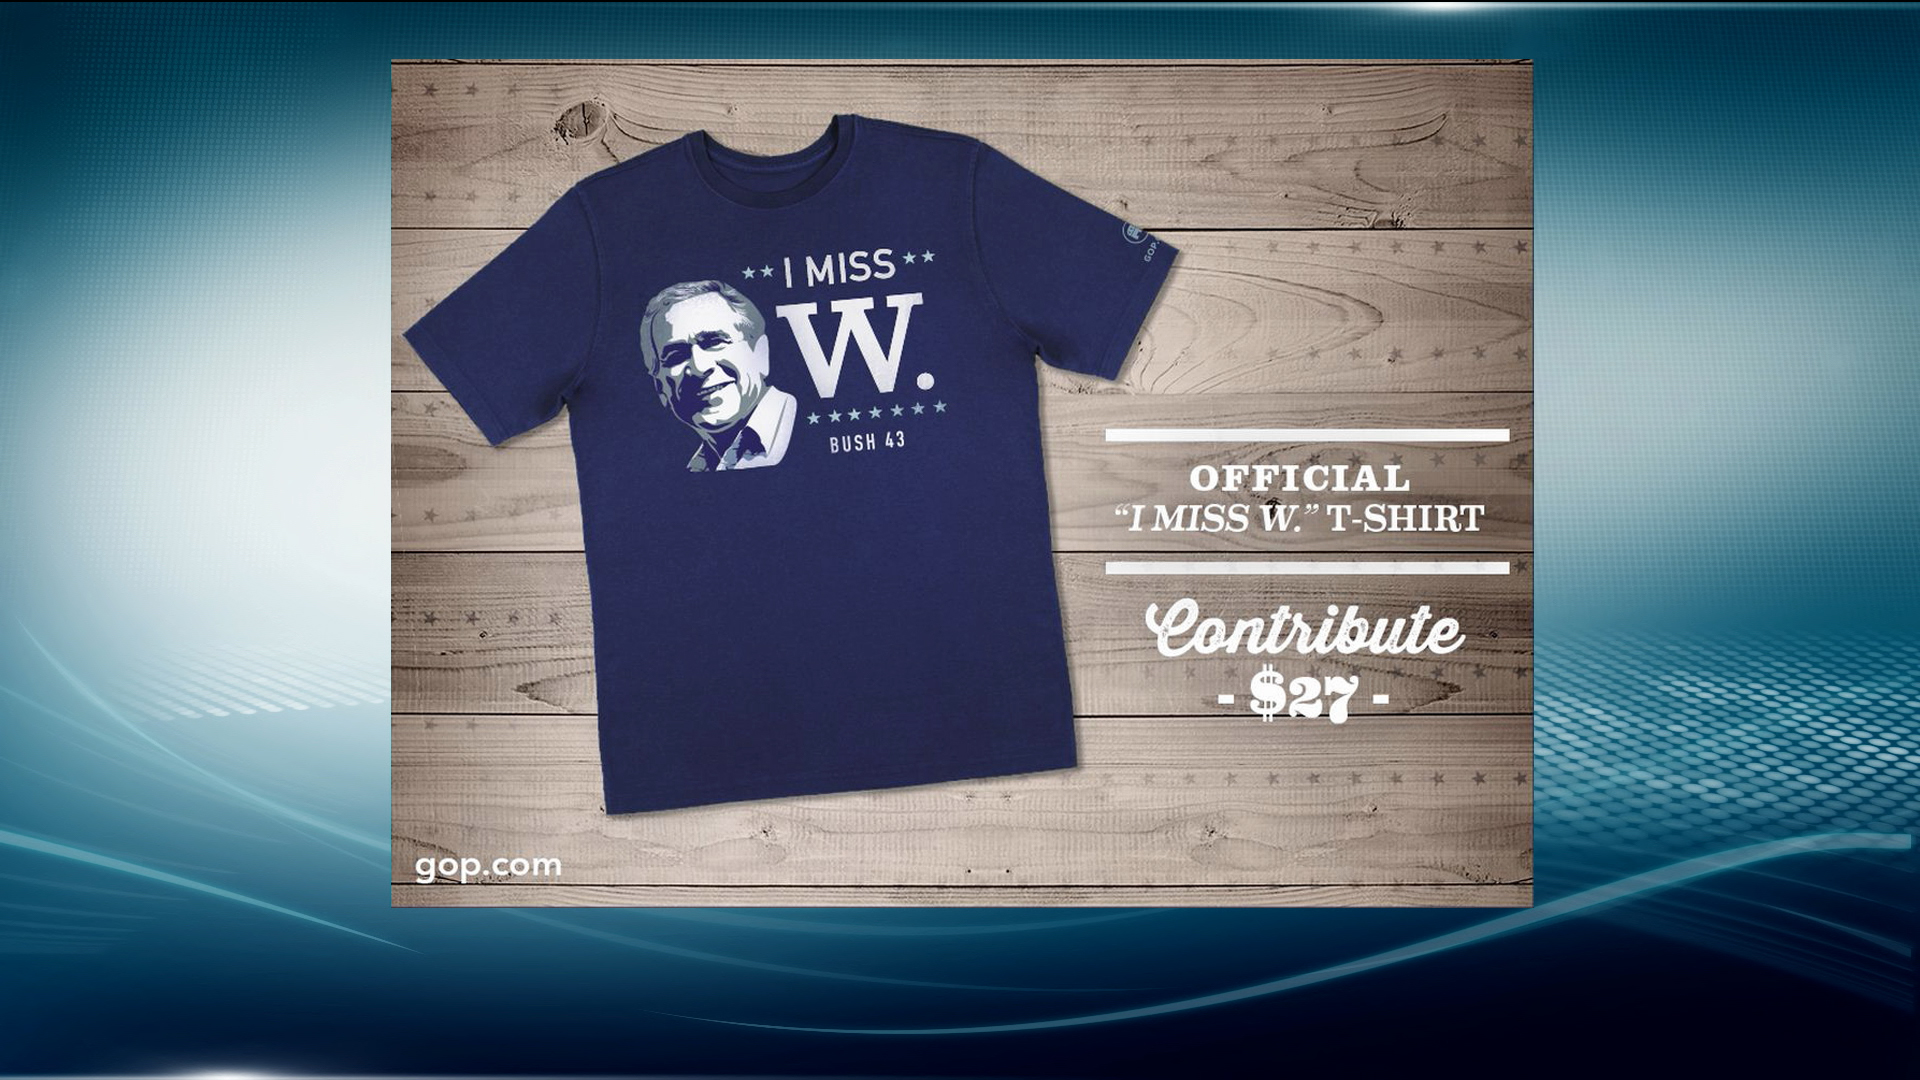 RNC's 'I Miss W.' t-shirt celebrates Bush